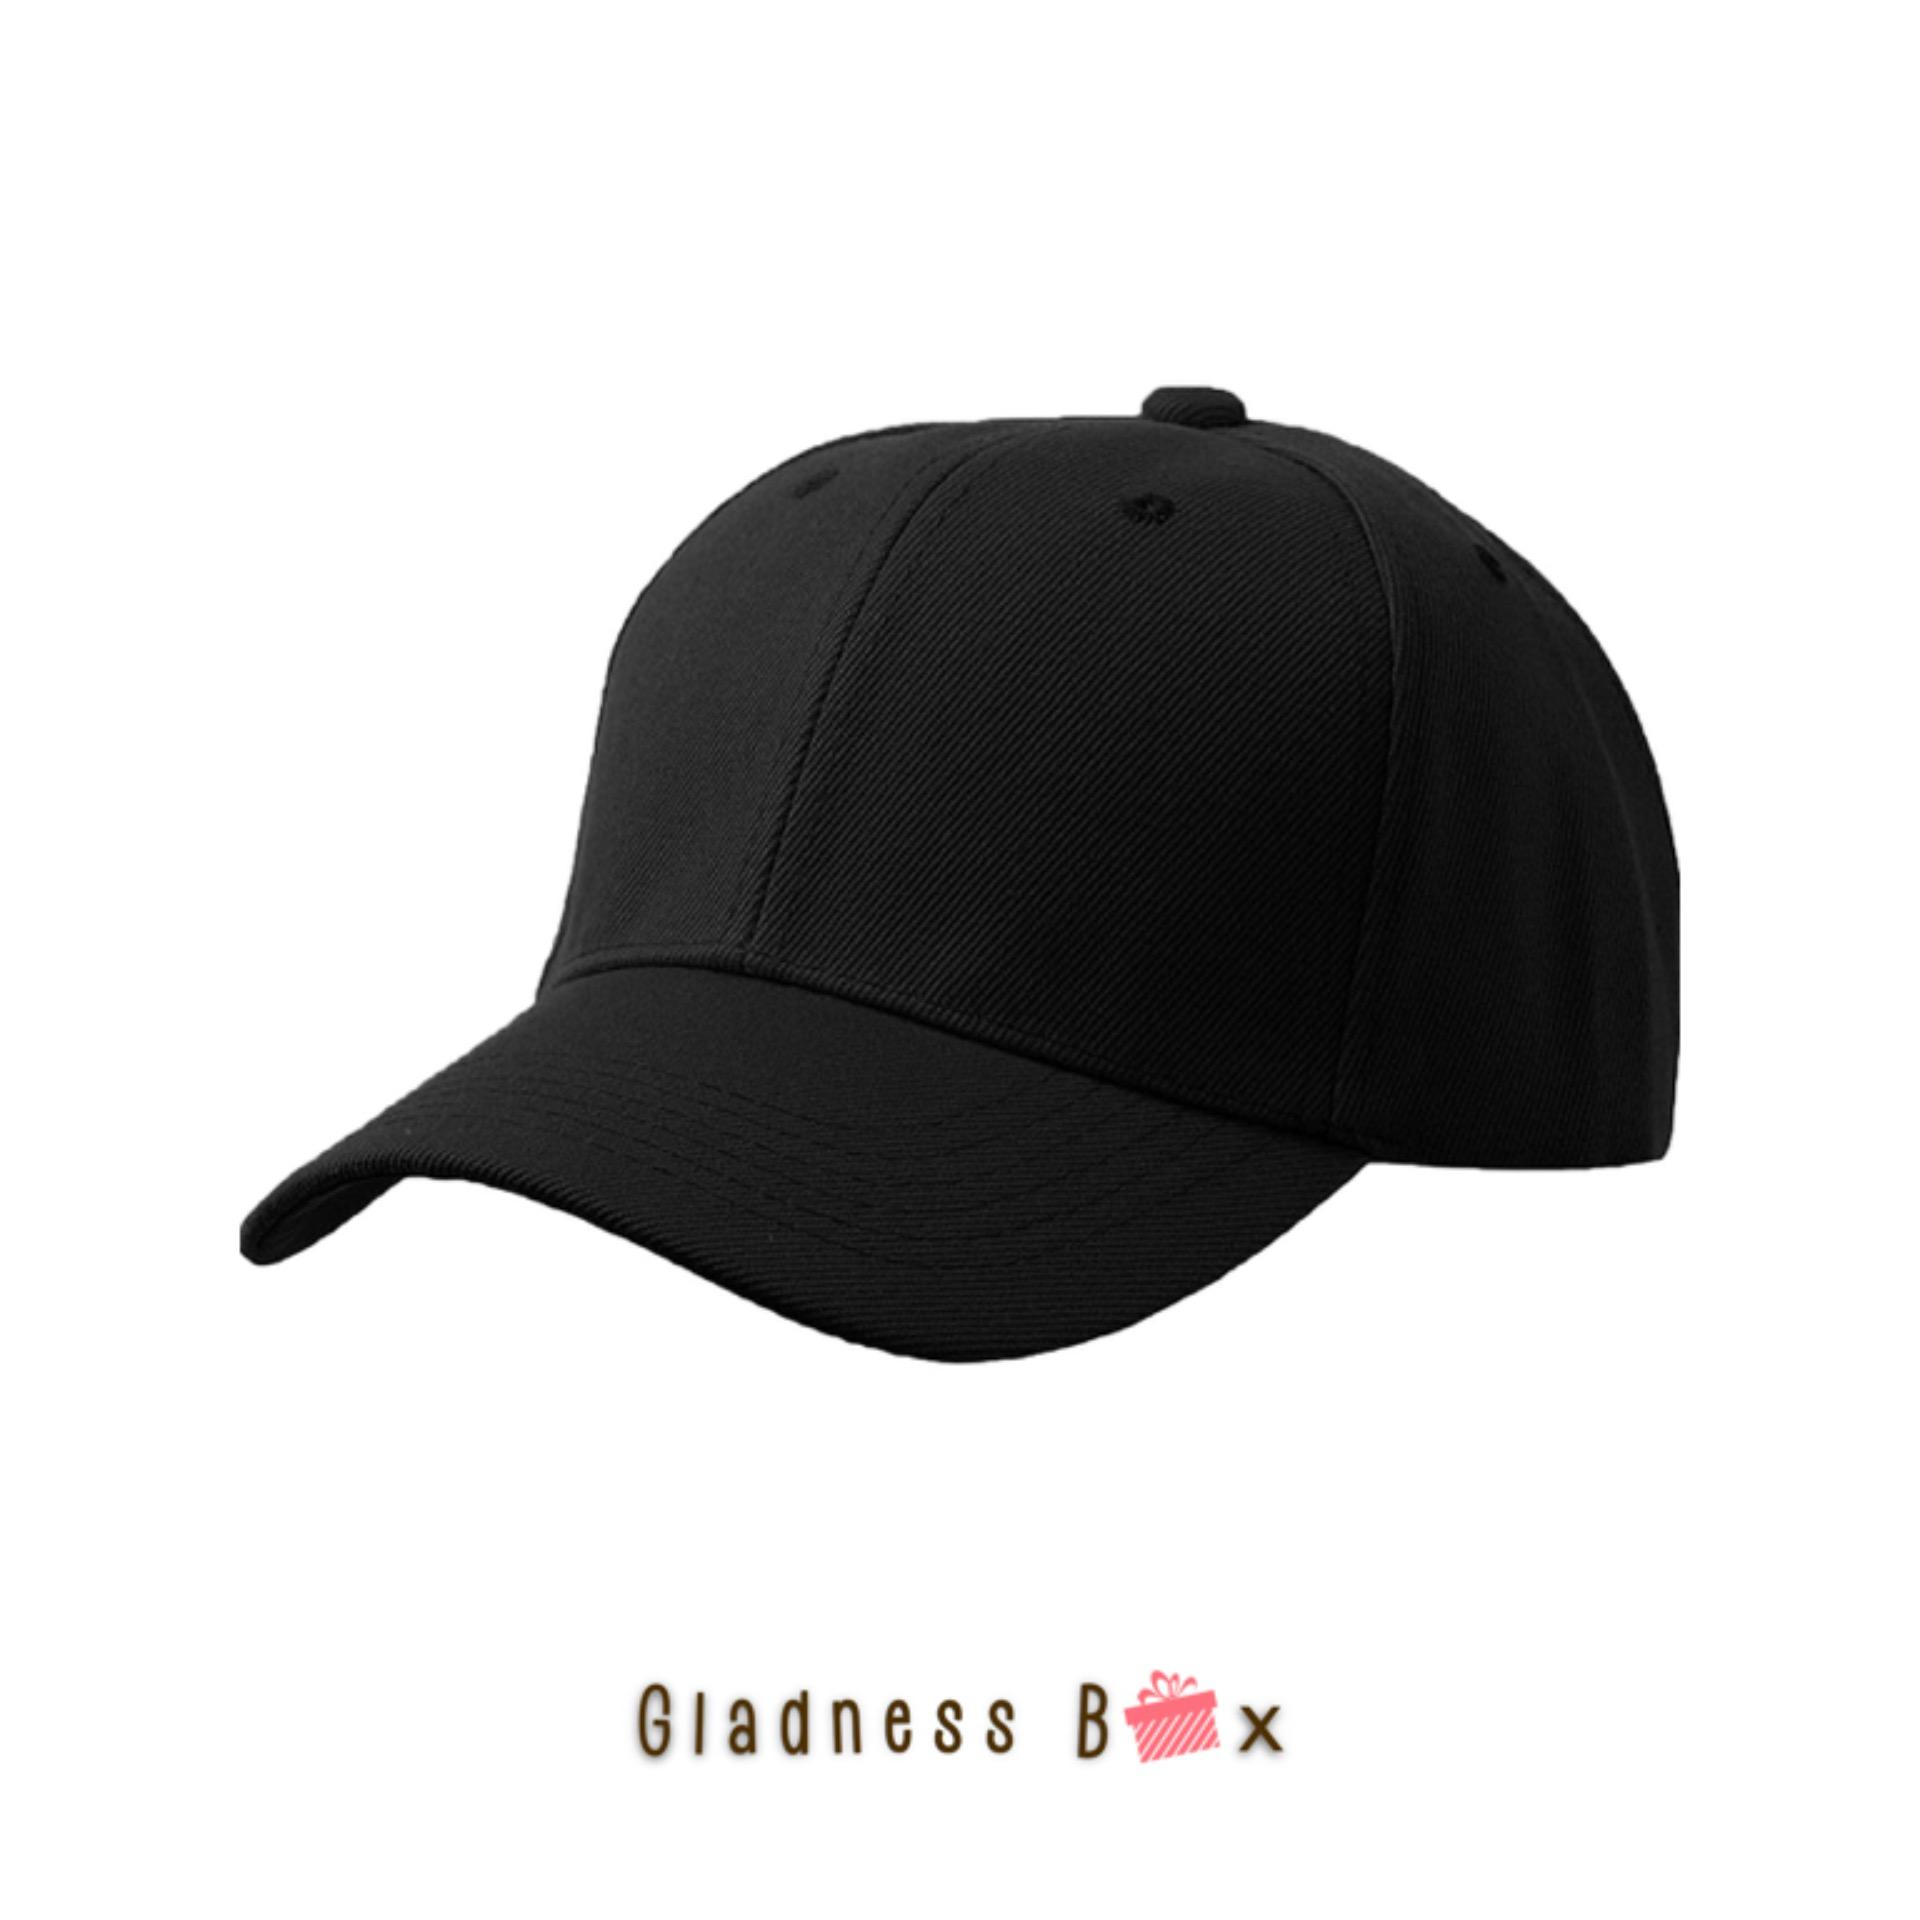 38690758aac Gladness Box High Quality Plain Baseball Cap for Men Women Unisex